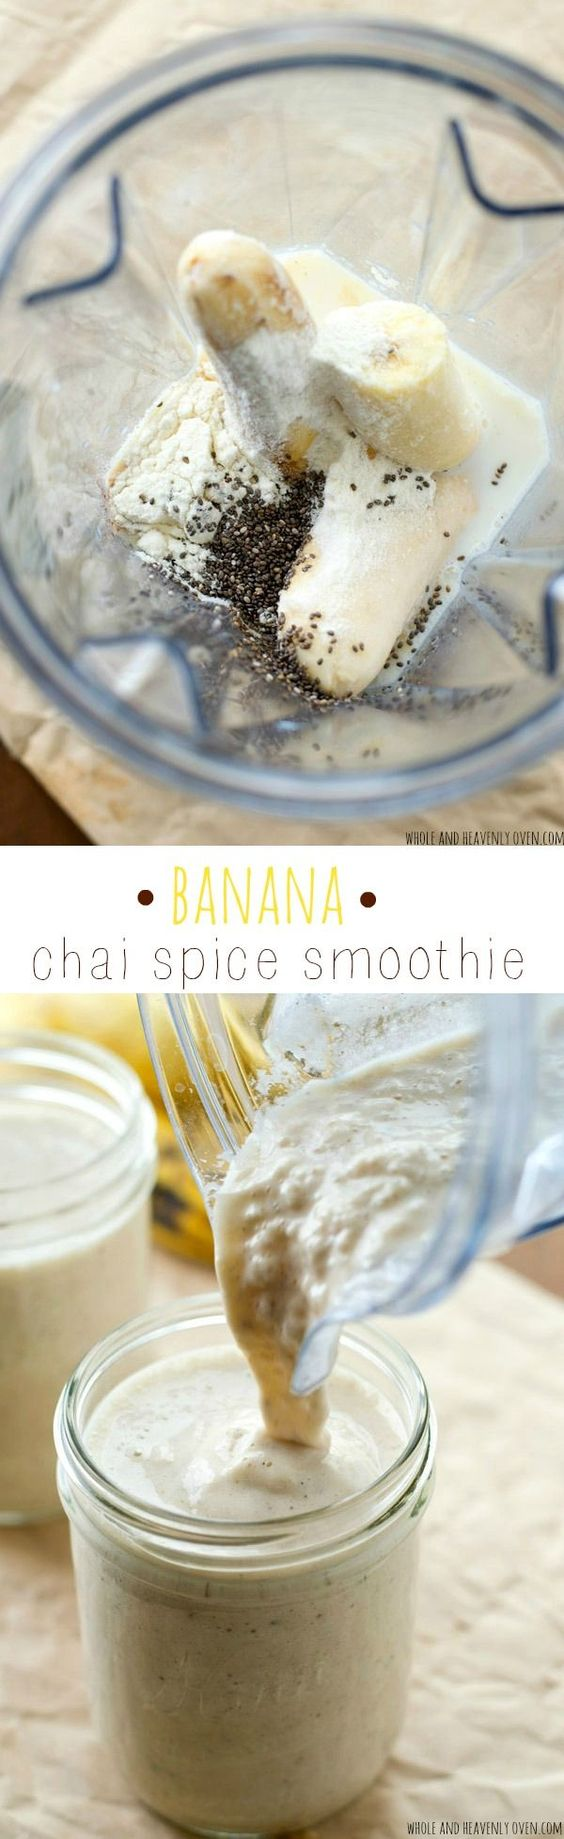 Banana Chai Breakfast Shake. A creamy, filling chai-spiced smoothie.: